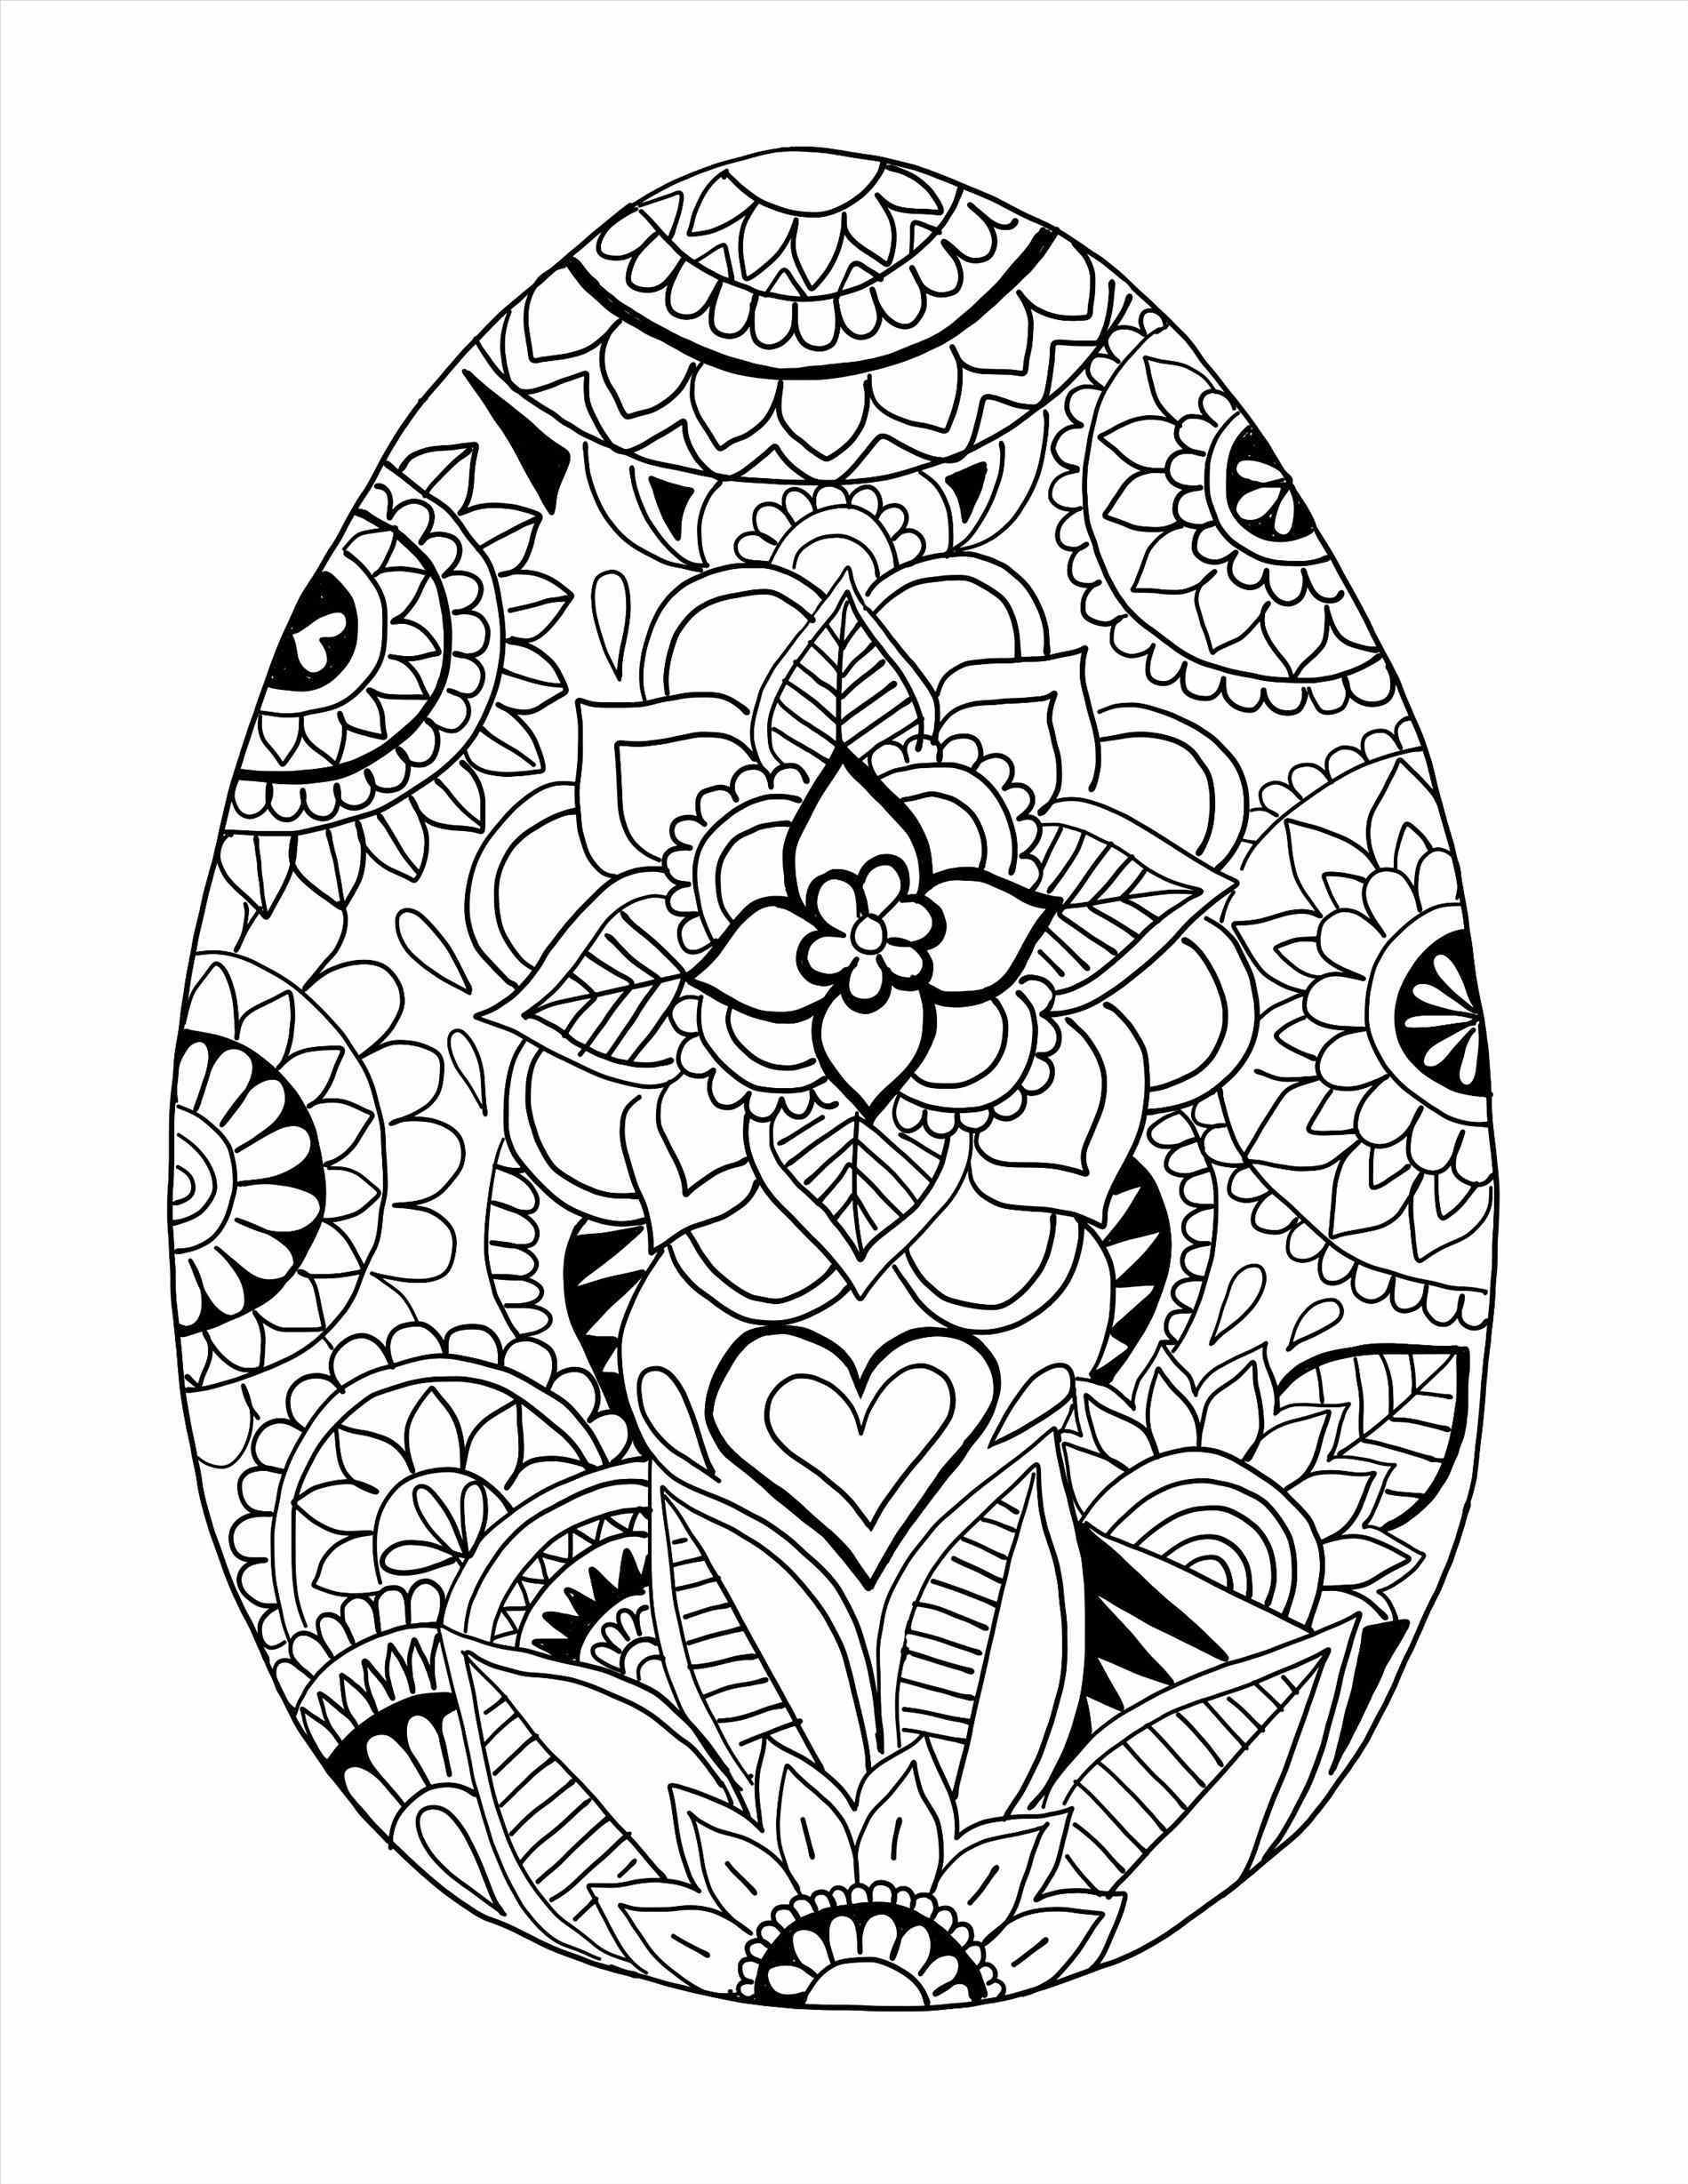 Detailed Easter Egg Coloring Pages at GetDrawings.com | Free ...